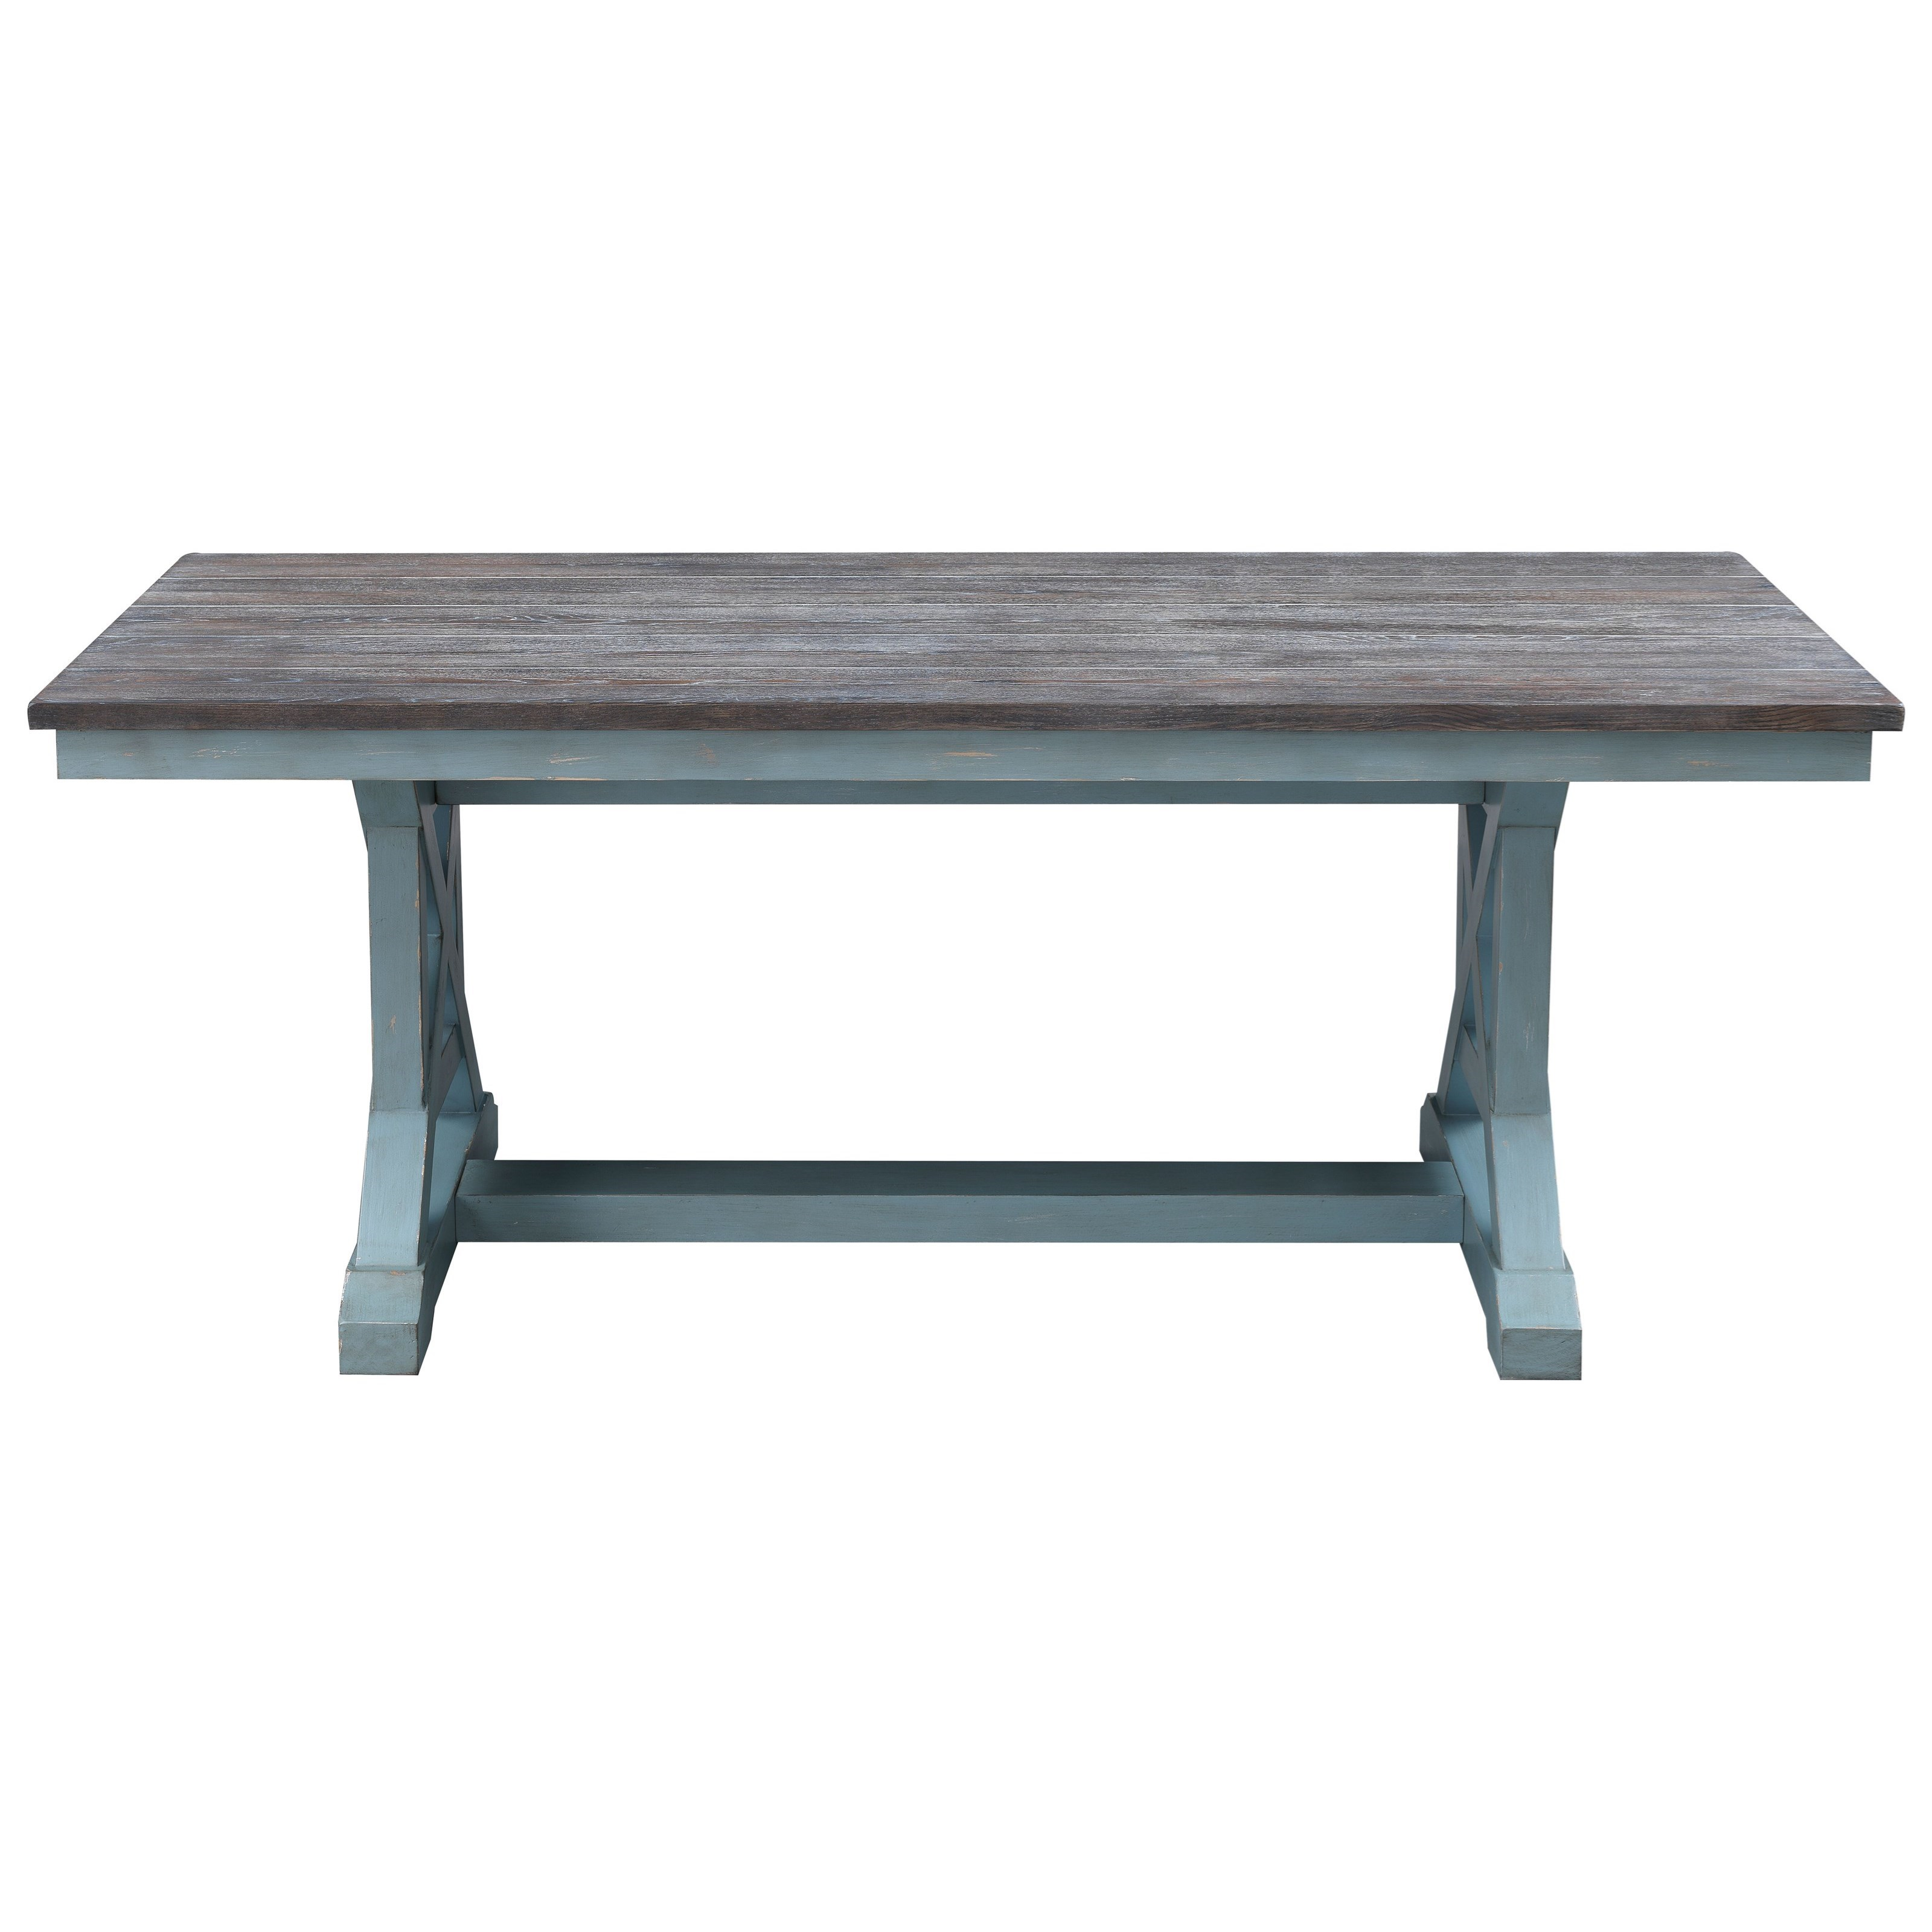 Bar Harbor Dining Table by C2C at Walker's Furniture